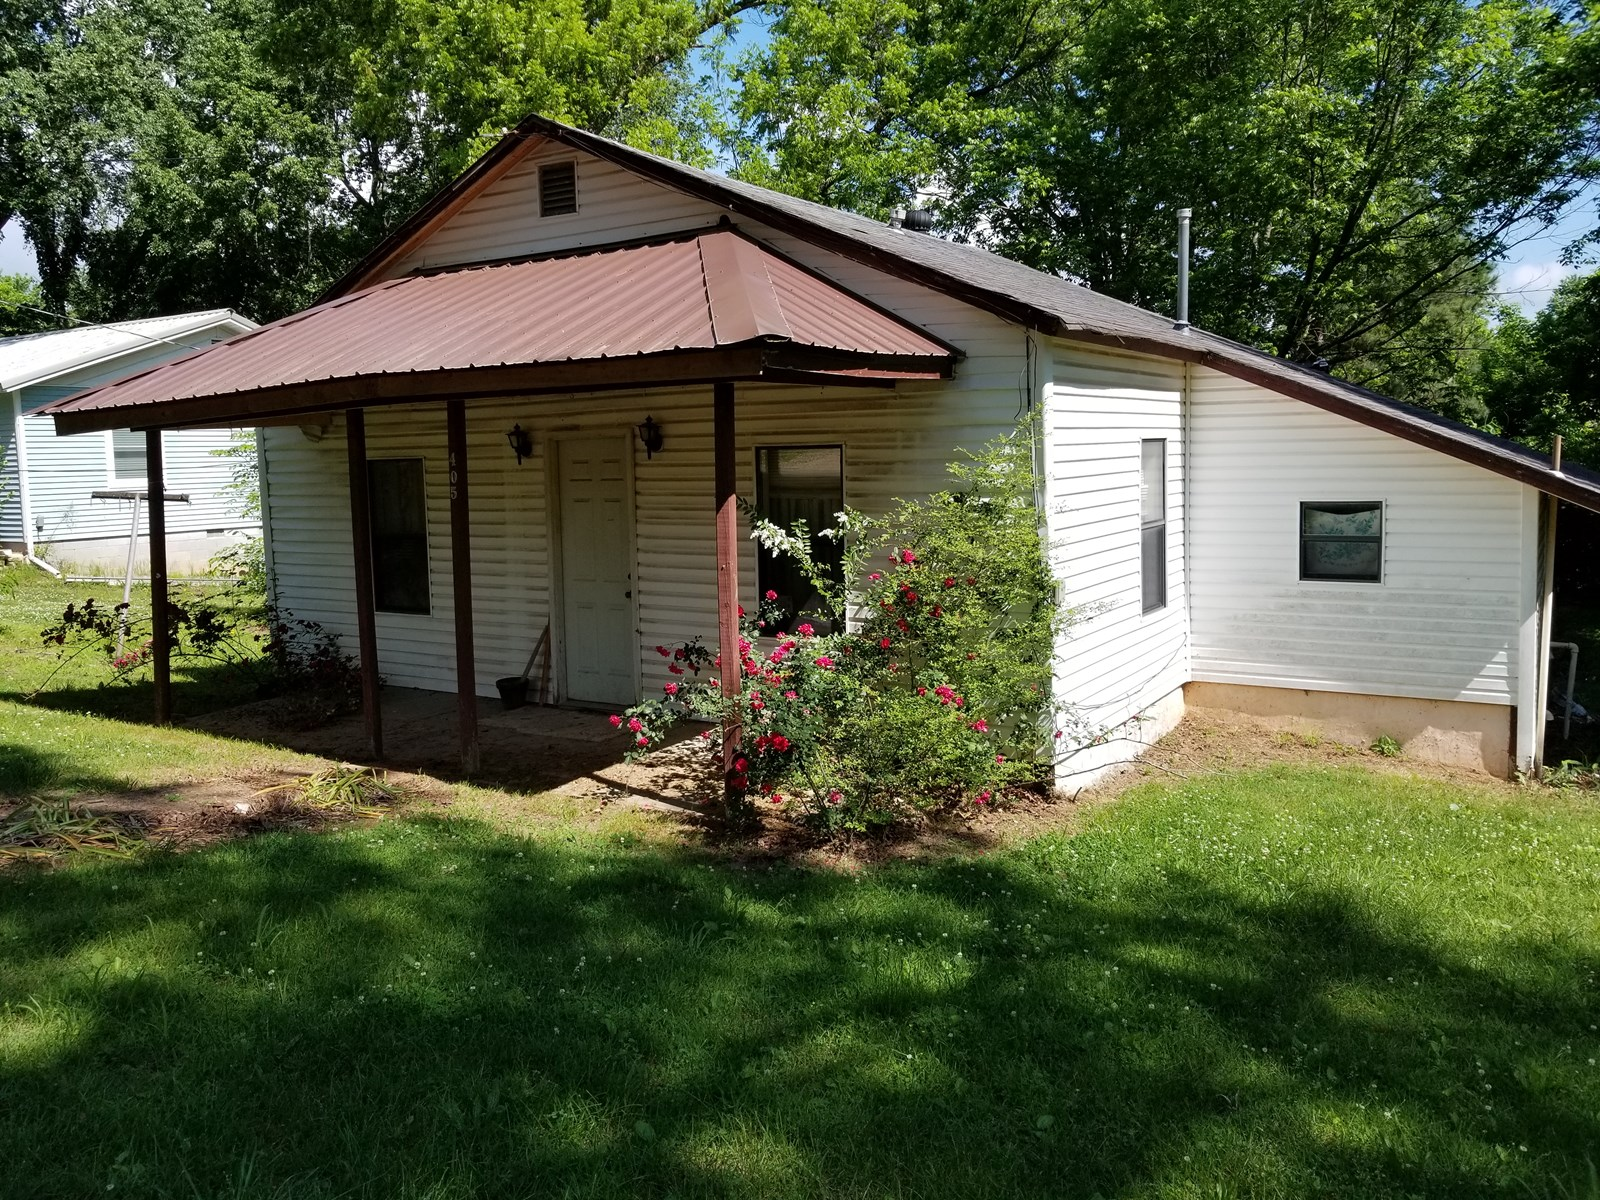 Bungalow fixer upper in the Ozarks